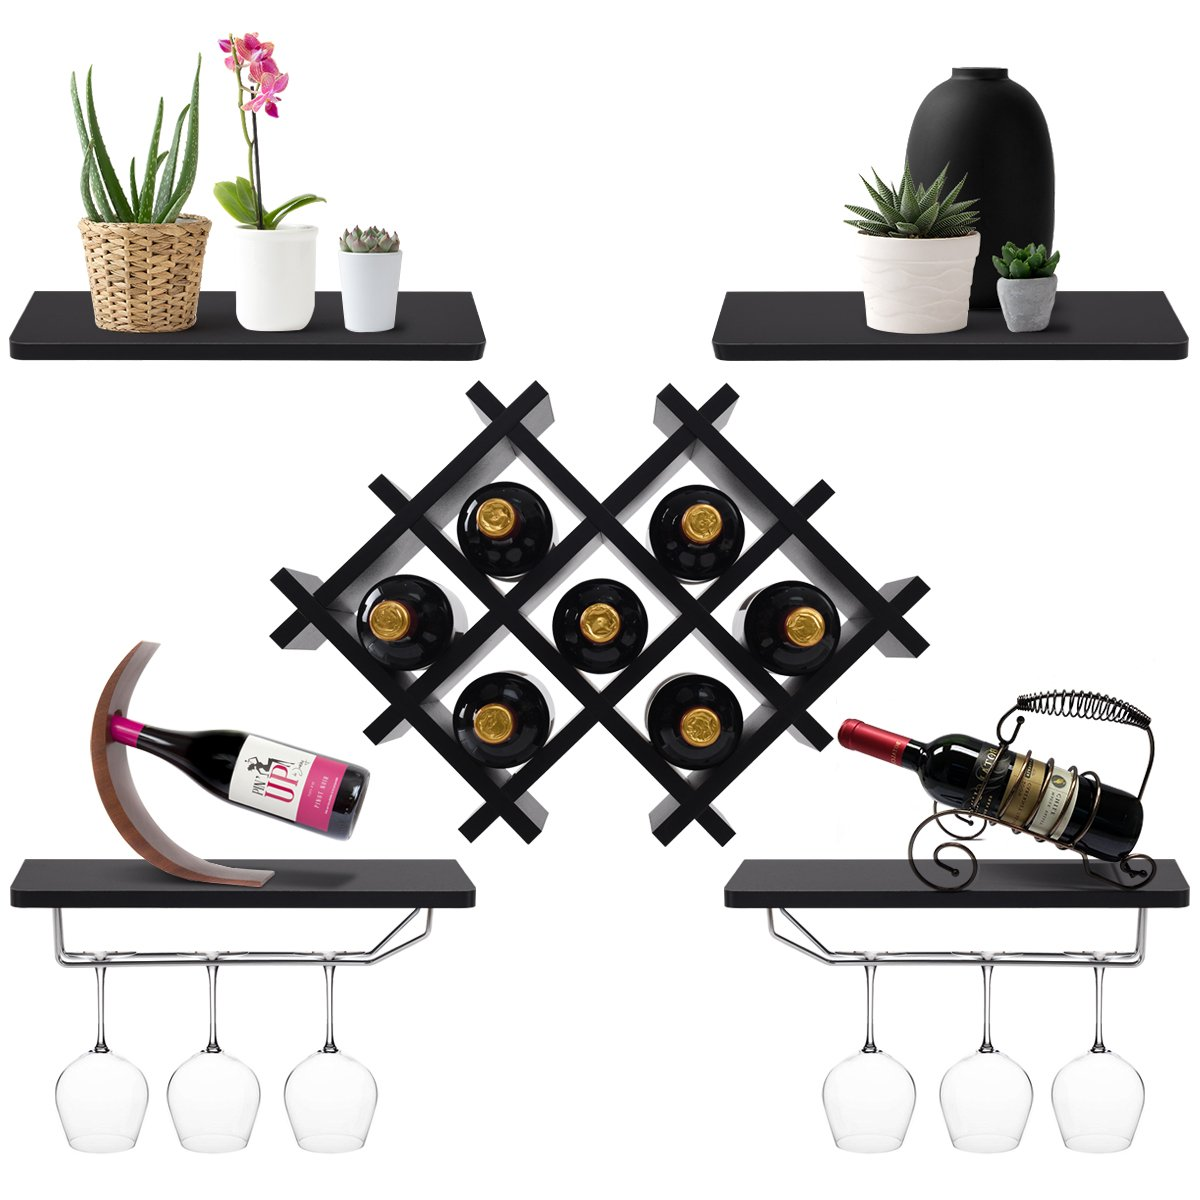 Giantex Set of 5 Wall Mount Wine Rack Set w/Storage Shelves and Glass Holder (Black) by Giantex